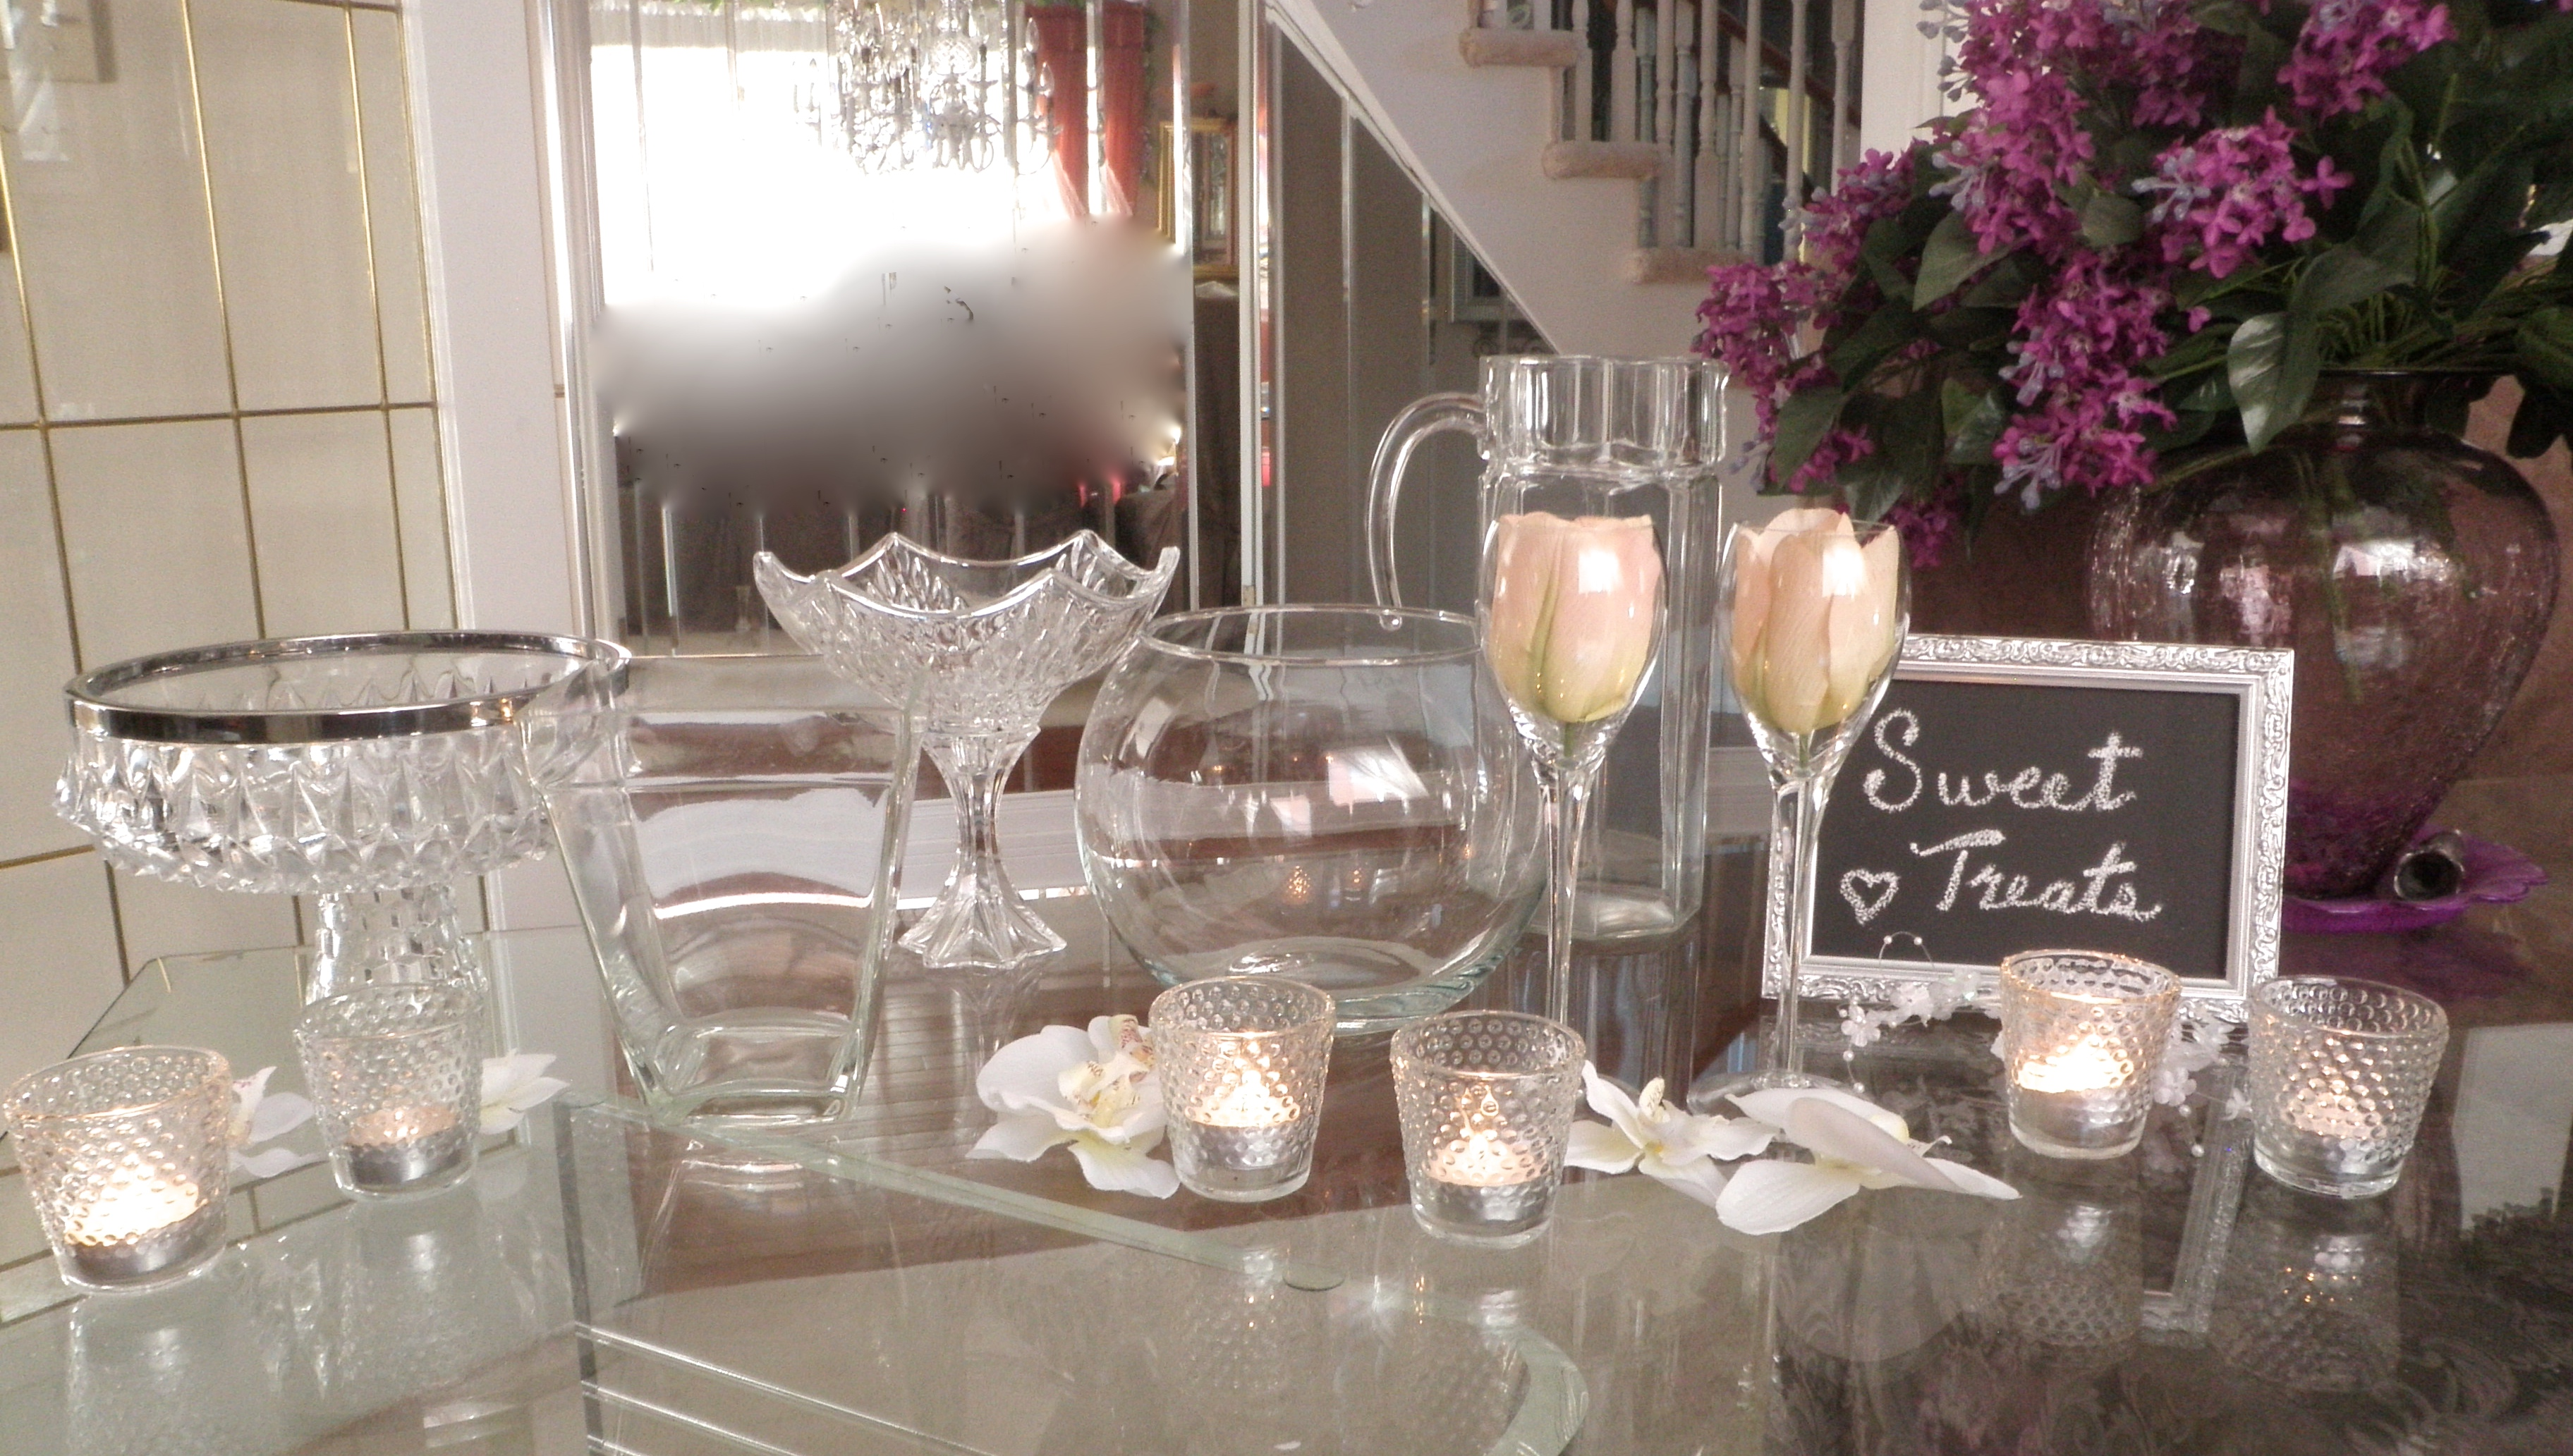 SWEET / DESSERT TABLE GLASSWARE for WEDDING, CHRISTMAS ENTERTAINING or SPECIAL OCCASIONS